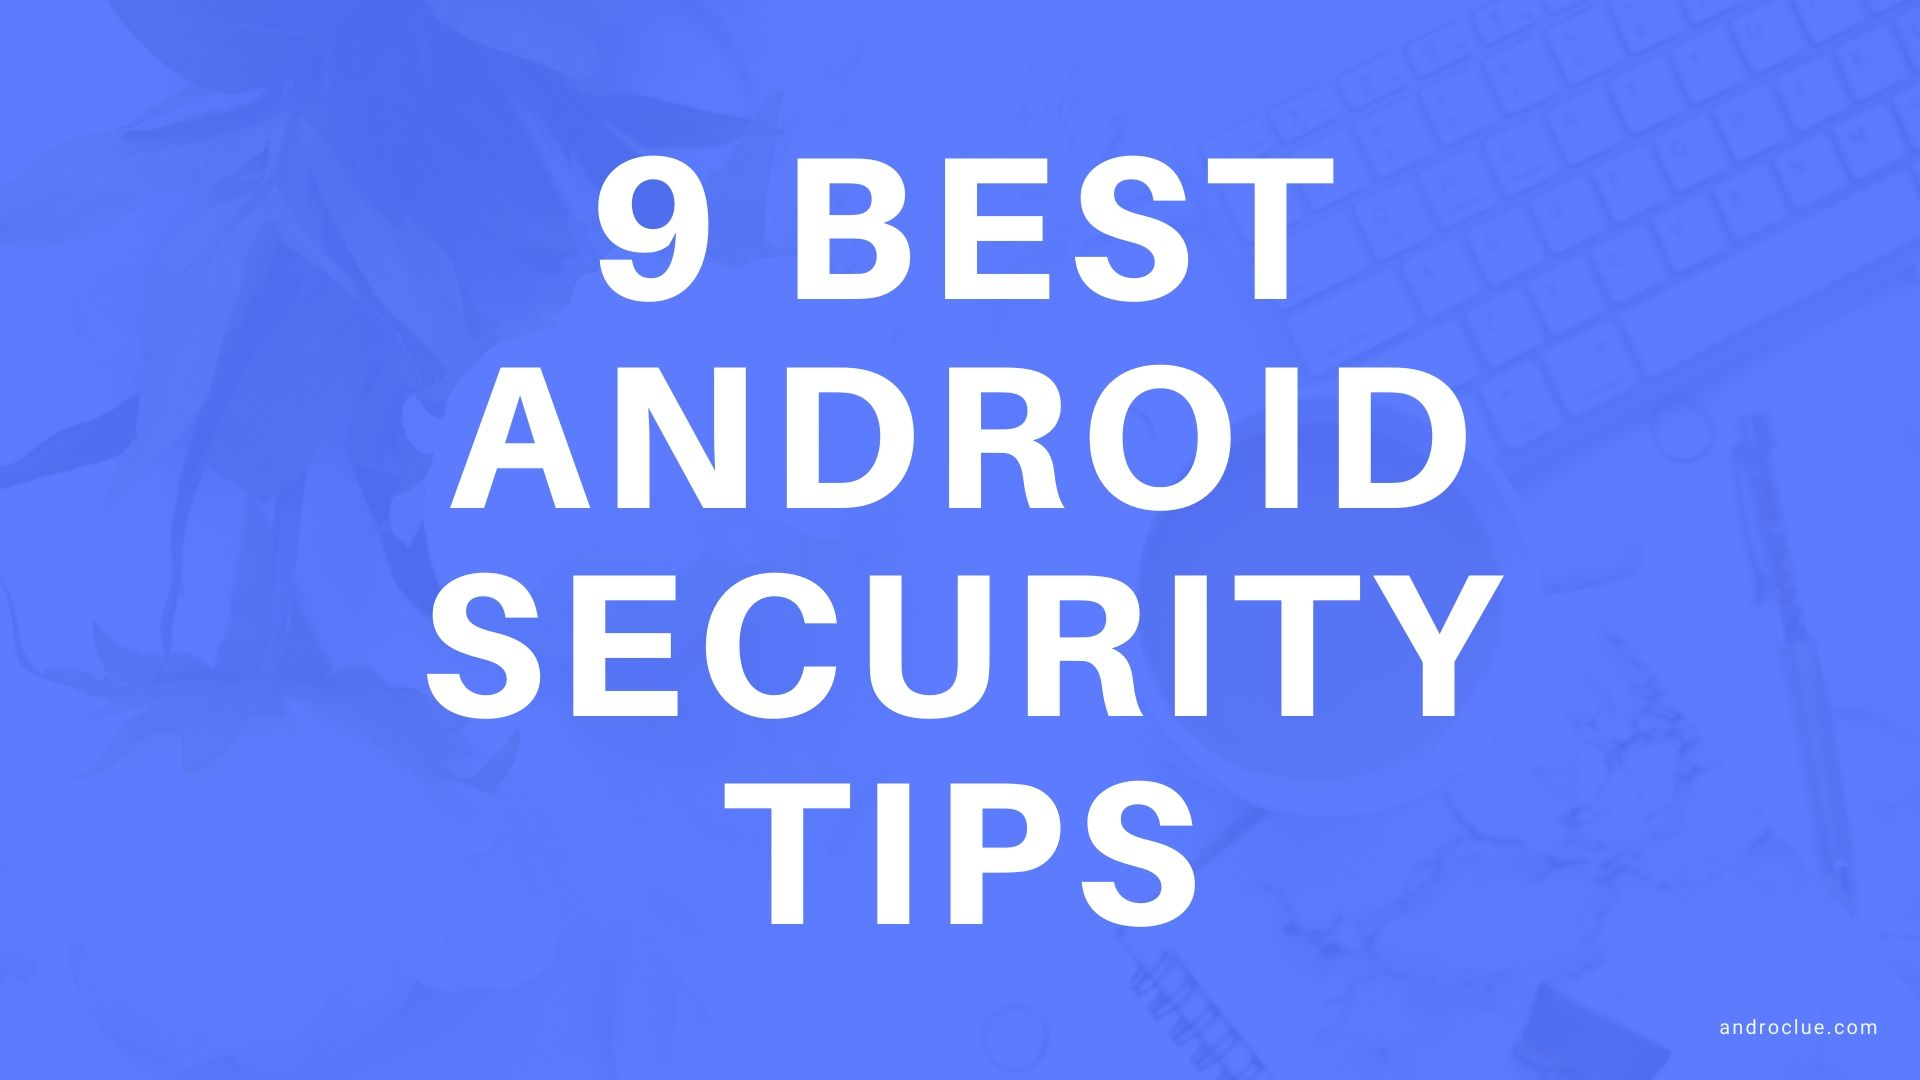 9 Best Android Security Tips